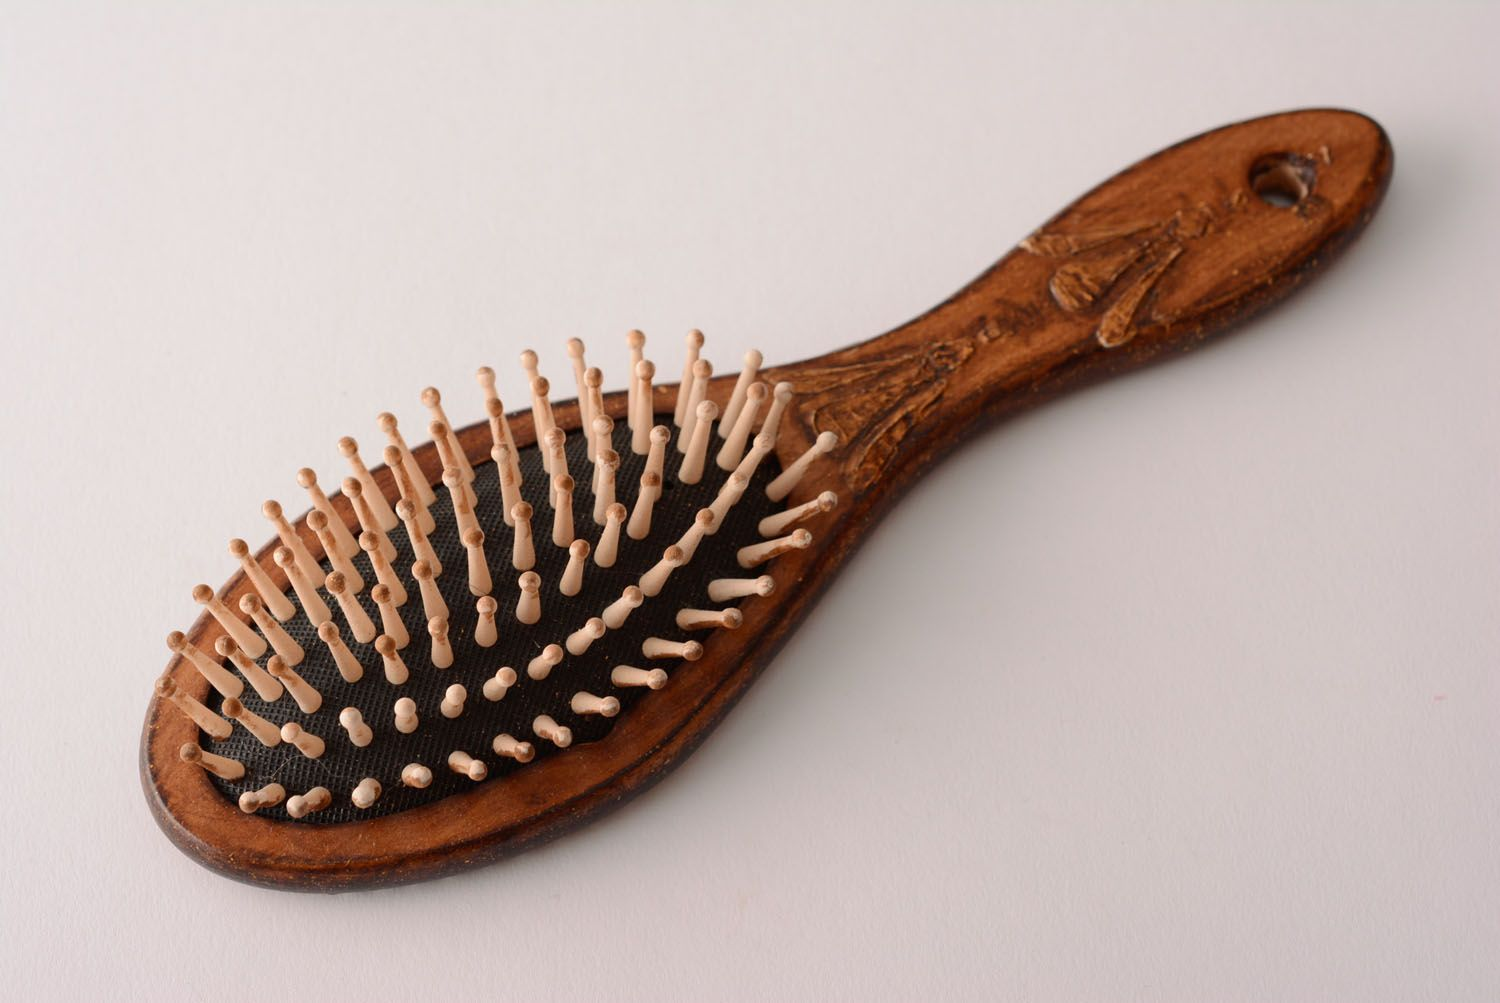 Handmade wooden hair brush stylish decoupage hair brush unusual brush for hair photo 1